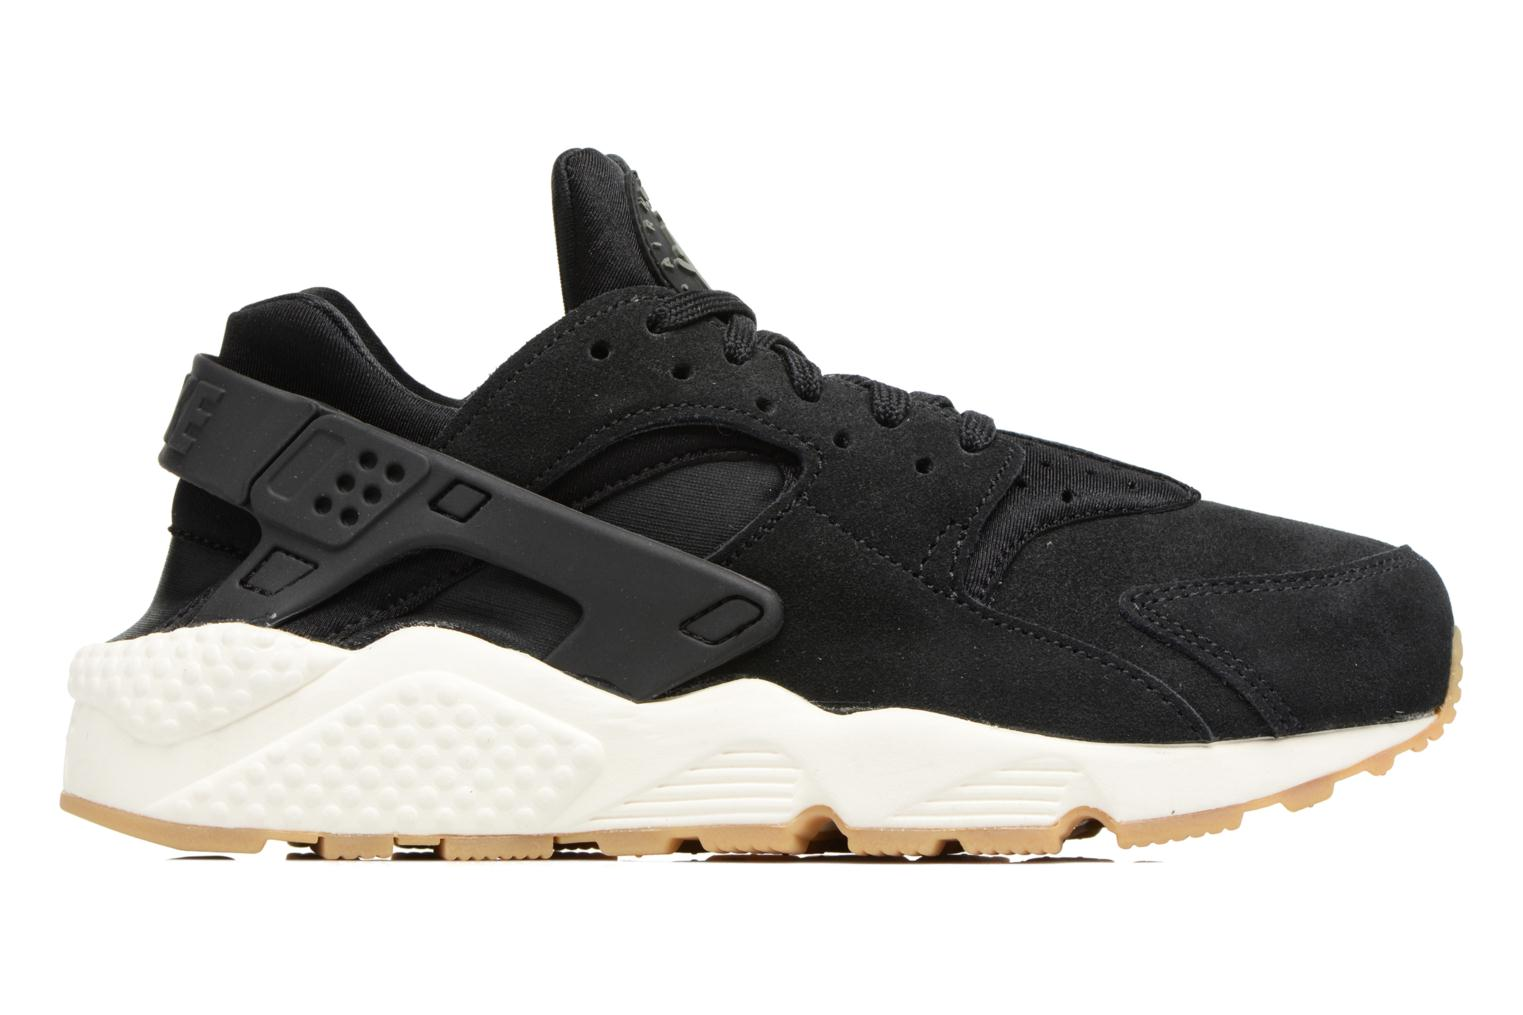 Baskets Nike Wmns Air Huarache Run Sd Noir vue derrière